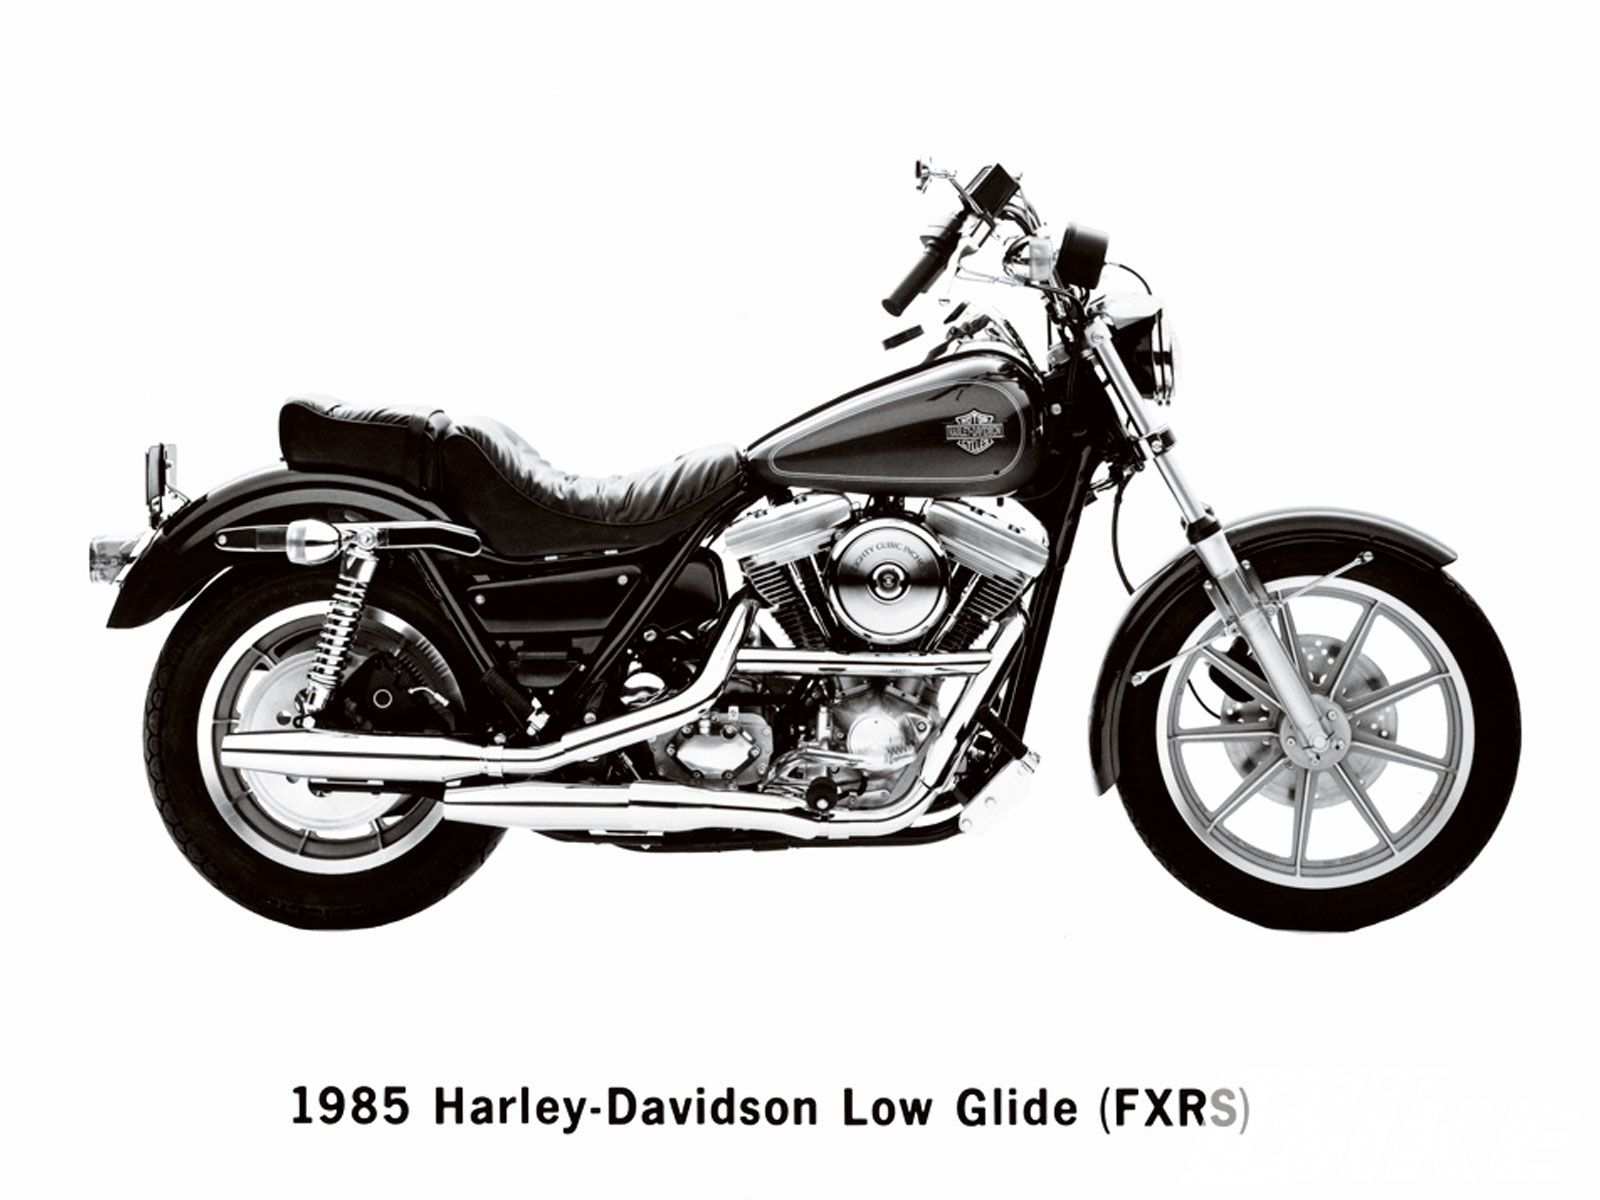 Harley Davidson Tour Glide Wiring Diagram 1988. . Wiring Diagram on